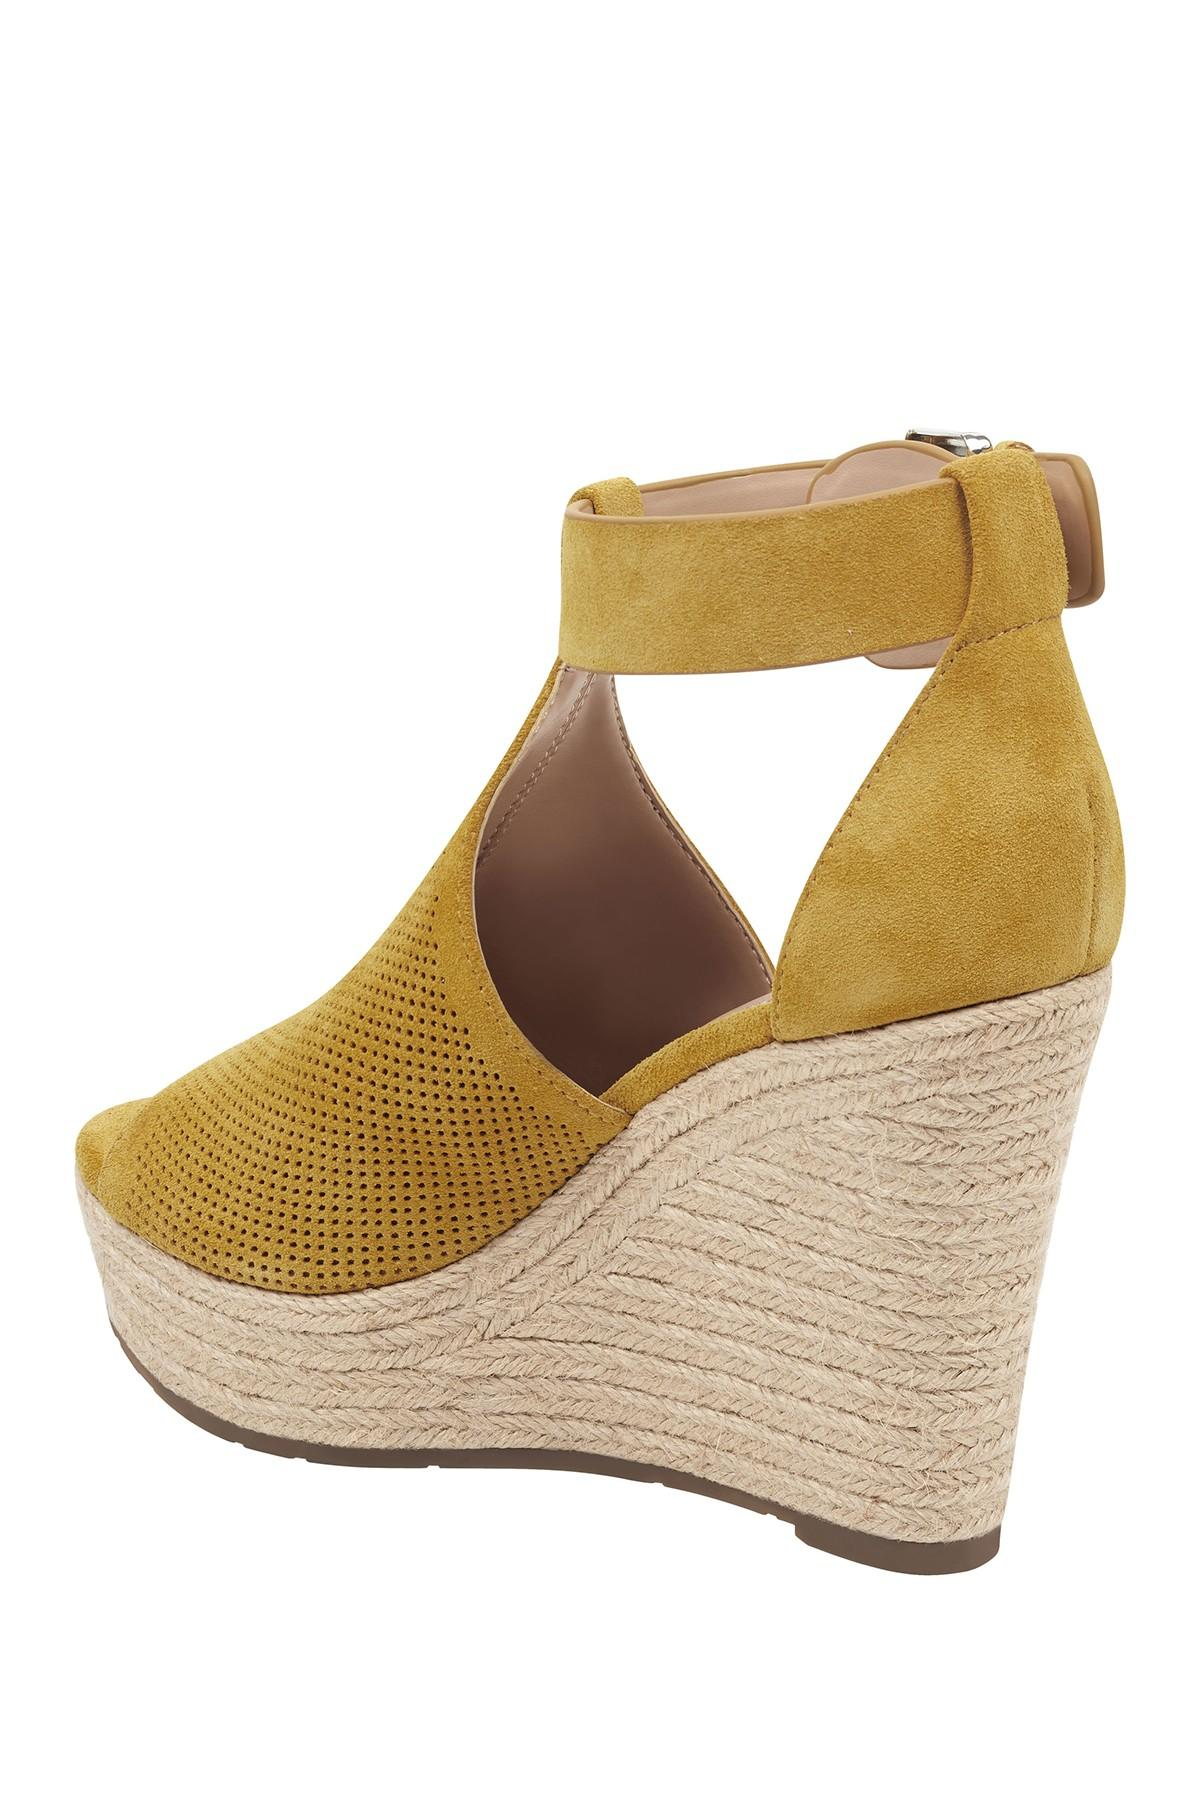 675fa57e4e Marc Fisher - Multicolor Allison Perforated Espadrille Platform Sandal -  Lyst. View fullscreen